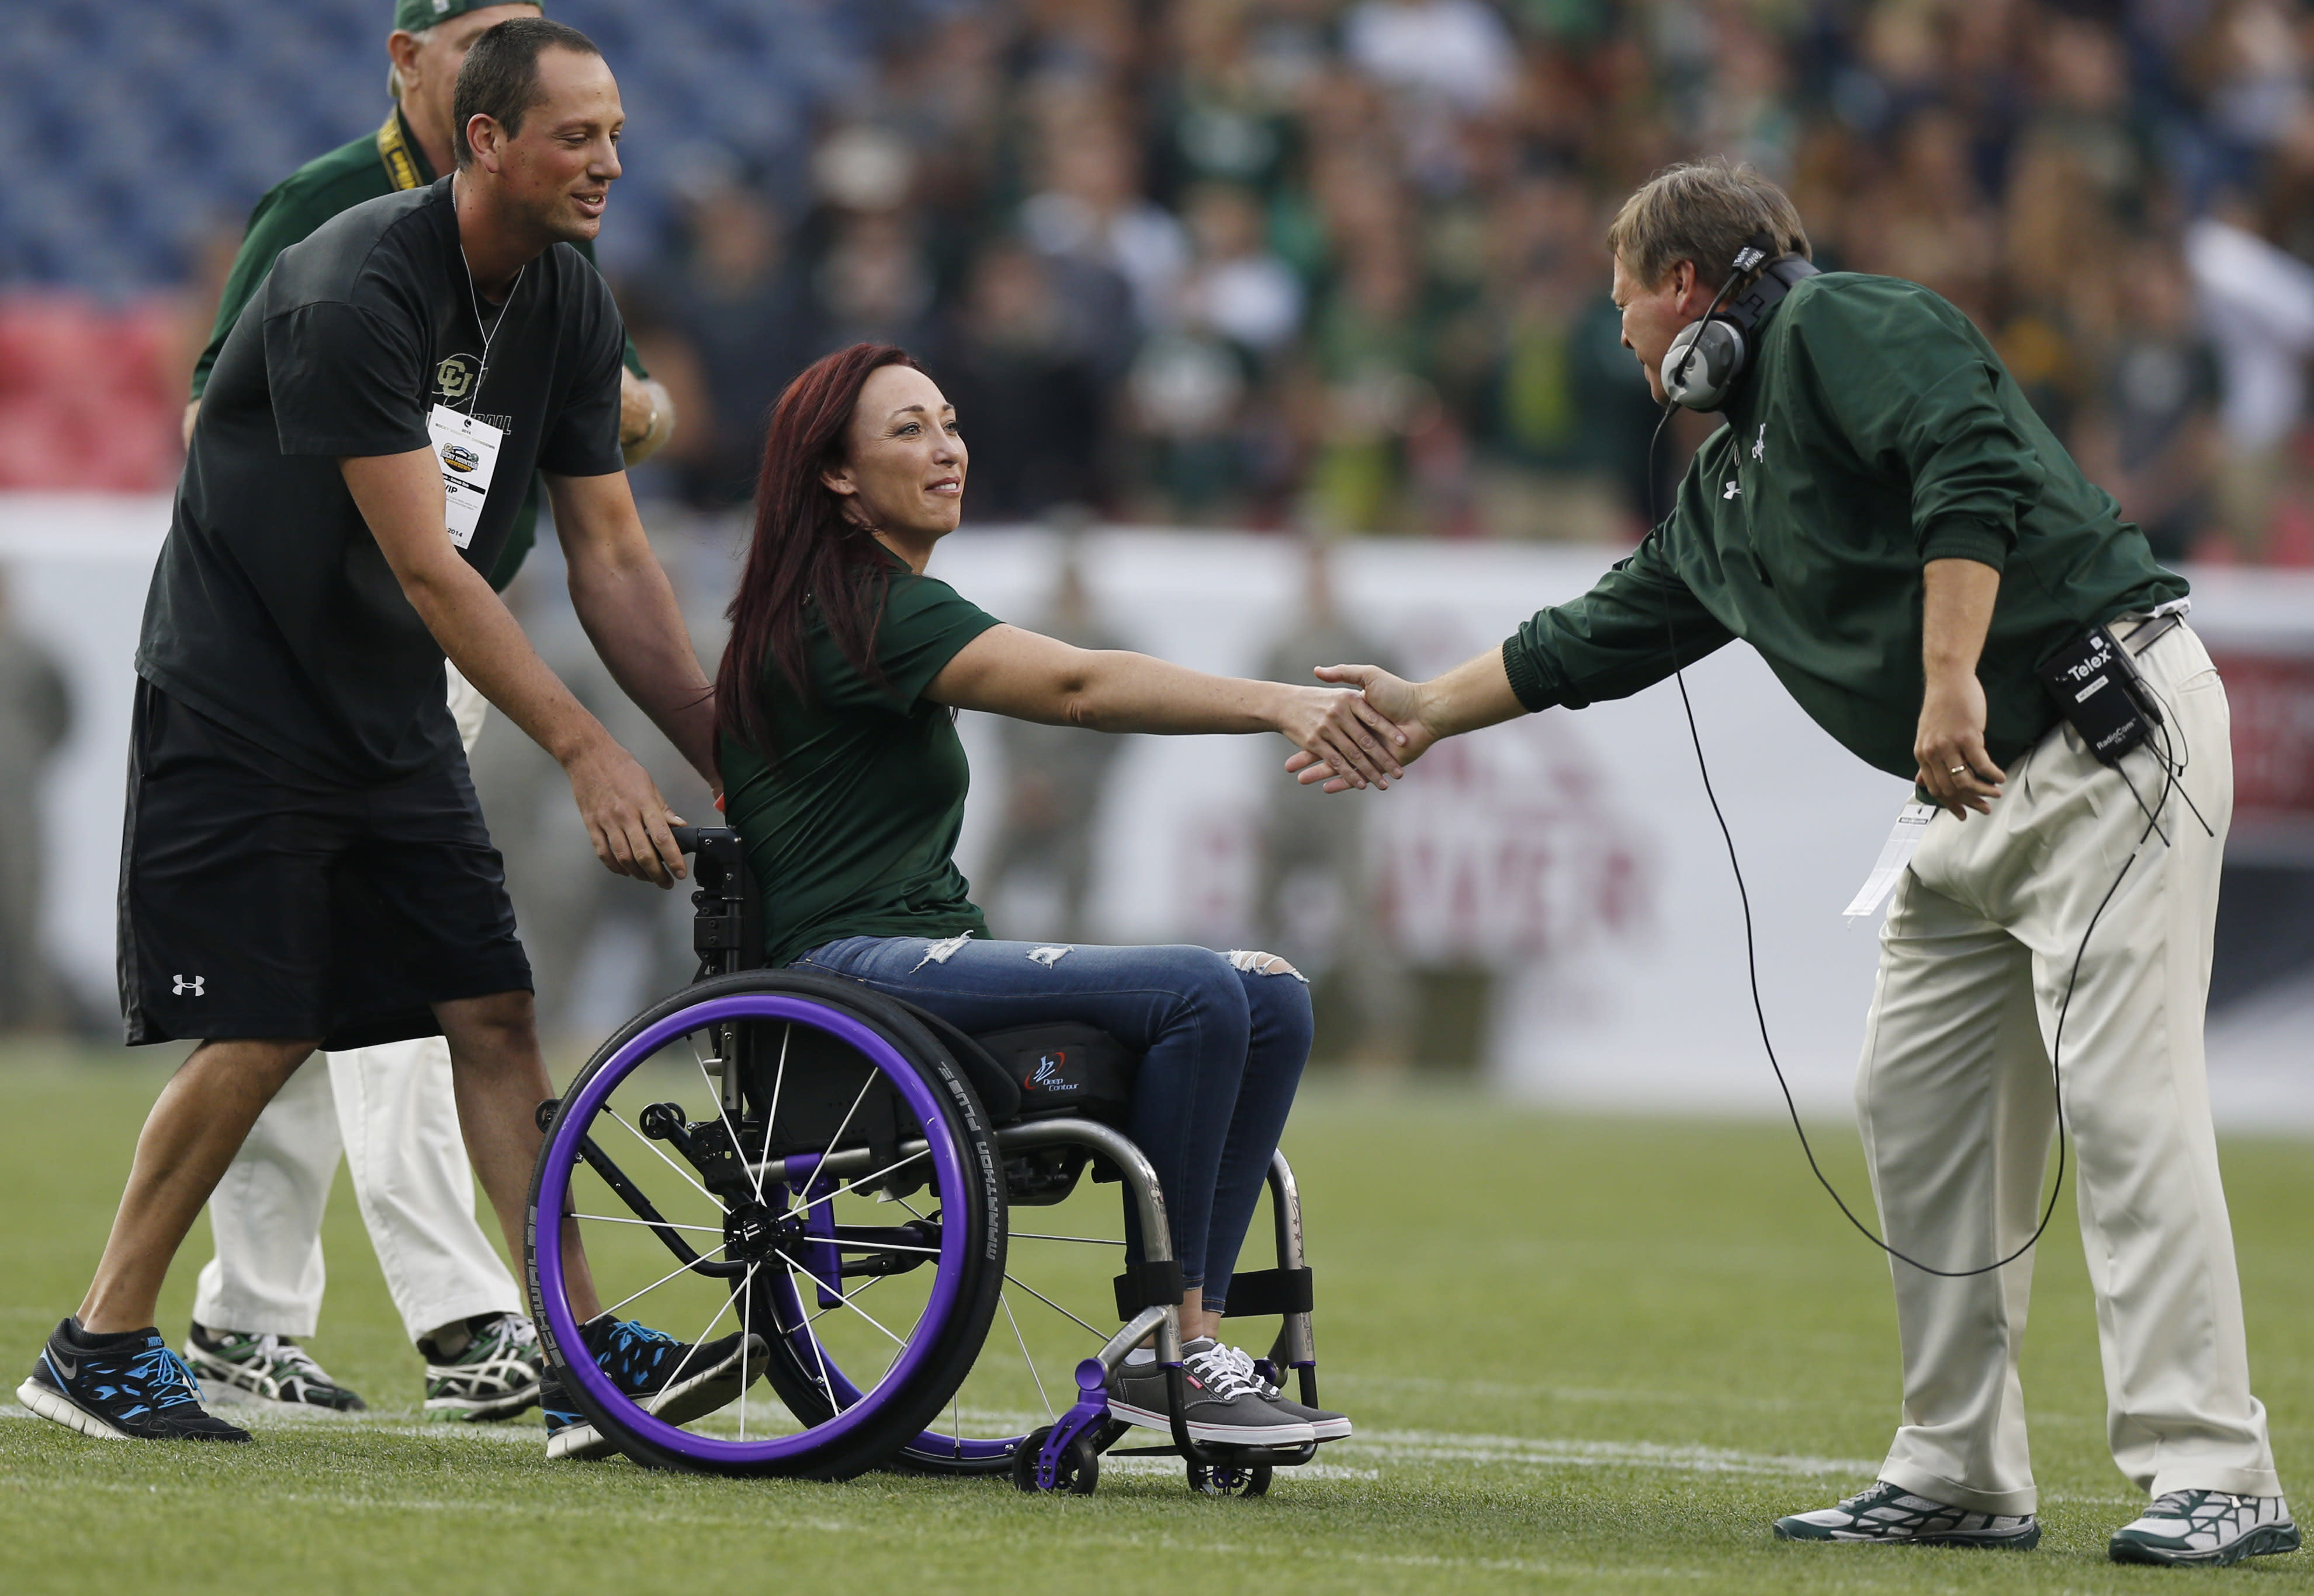 Amy Van Dyken returns to broadcast booth after ATV accident